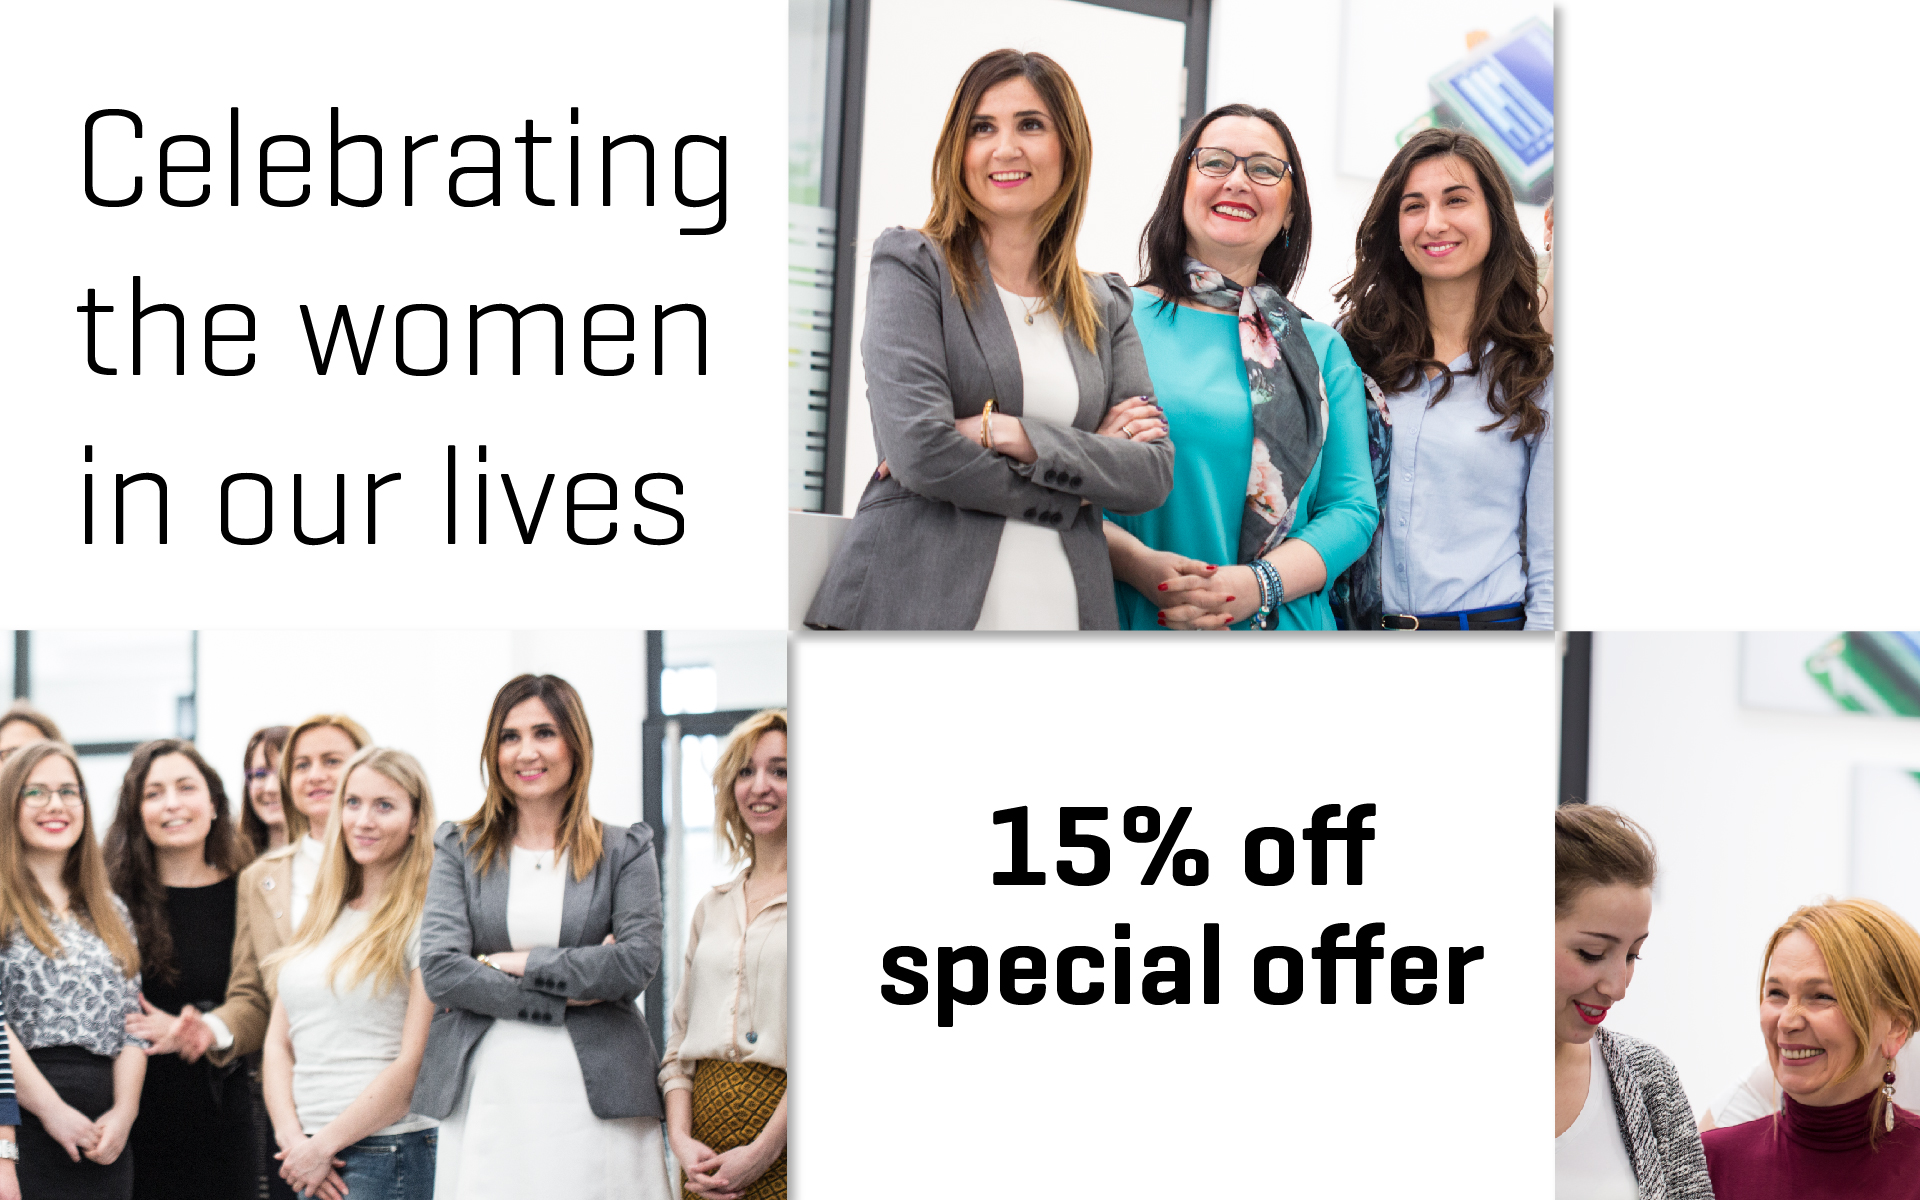 Celebrating International Women's Day with a 15% discount